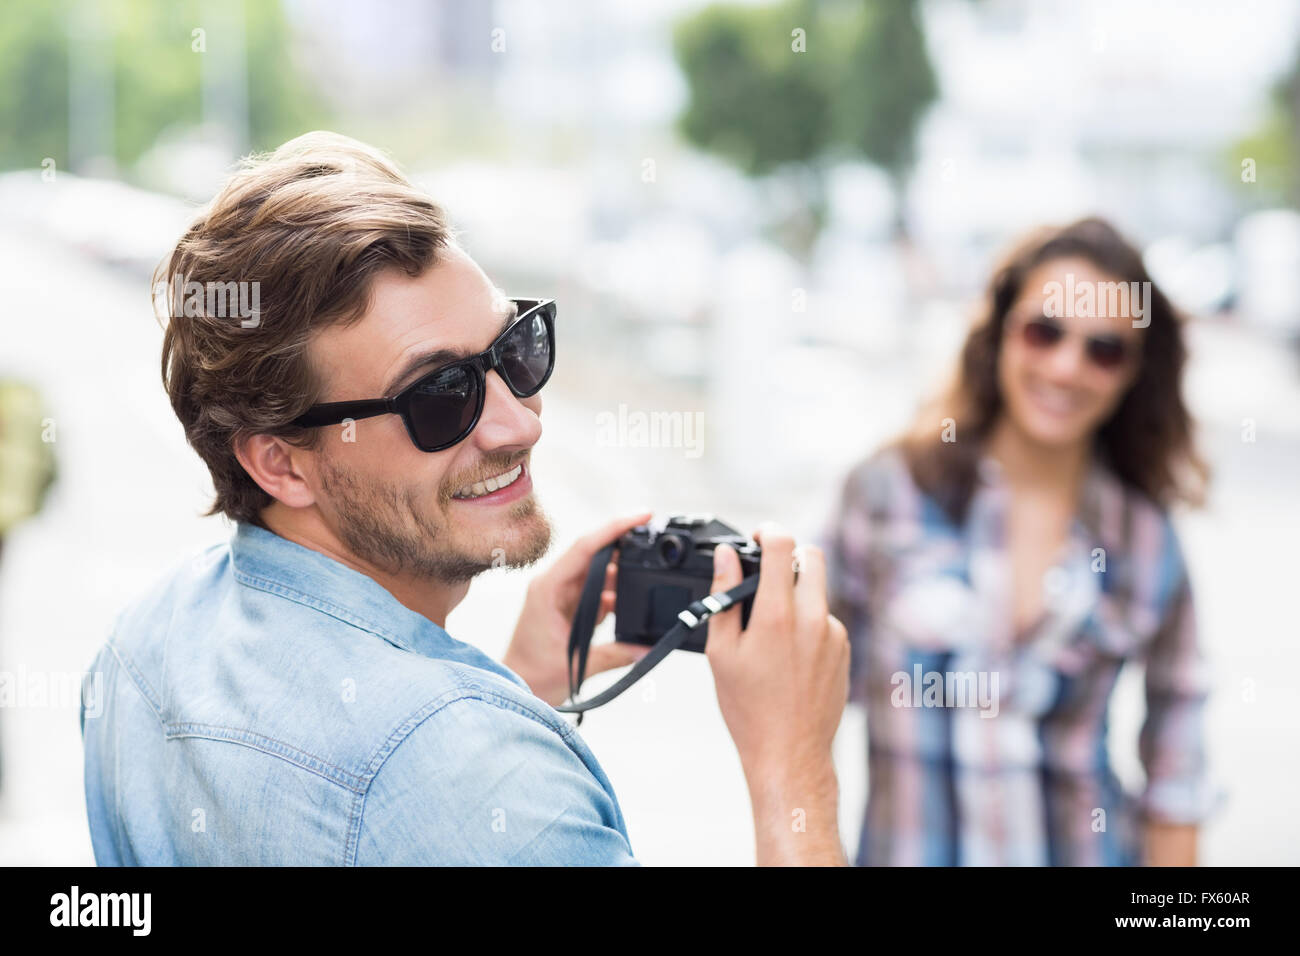 Man smiling at camera - Stock Image